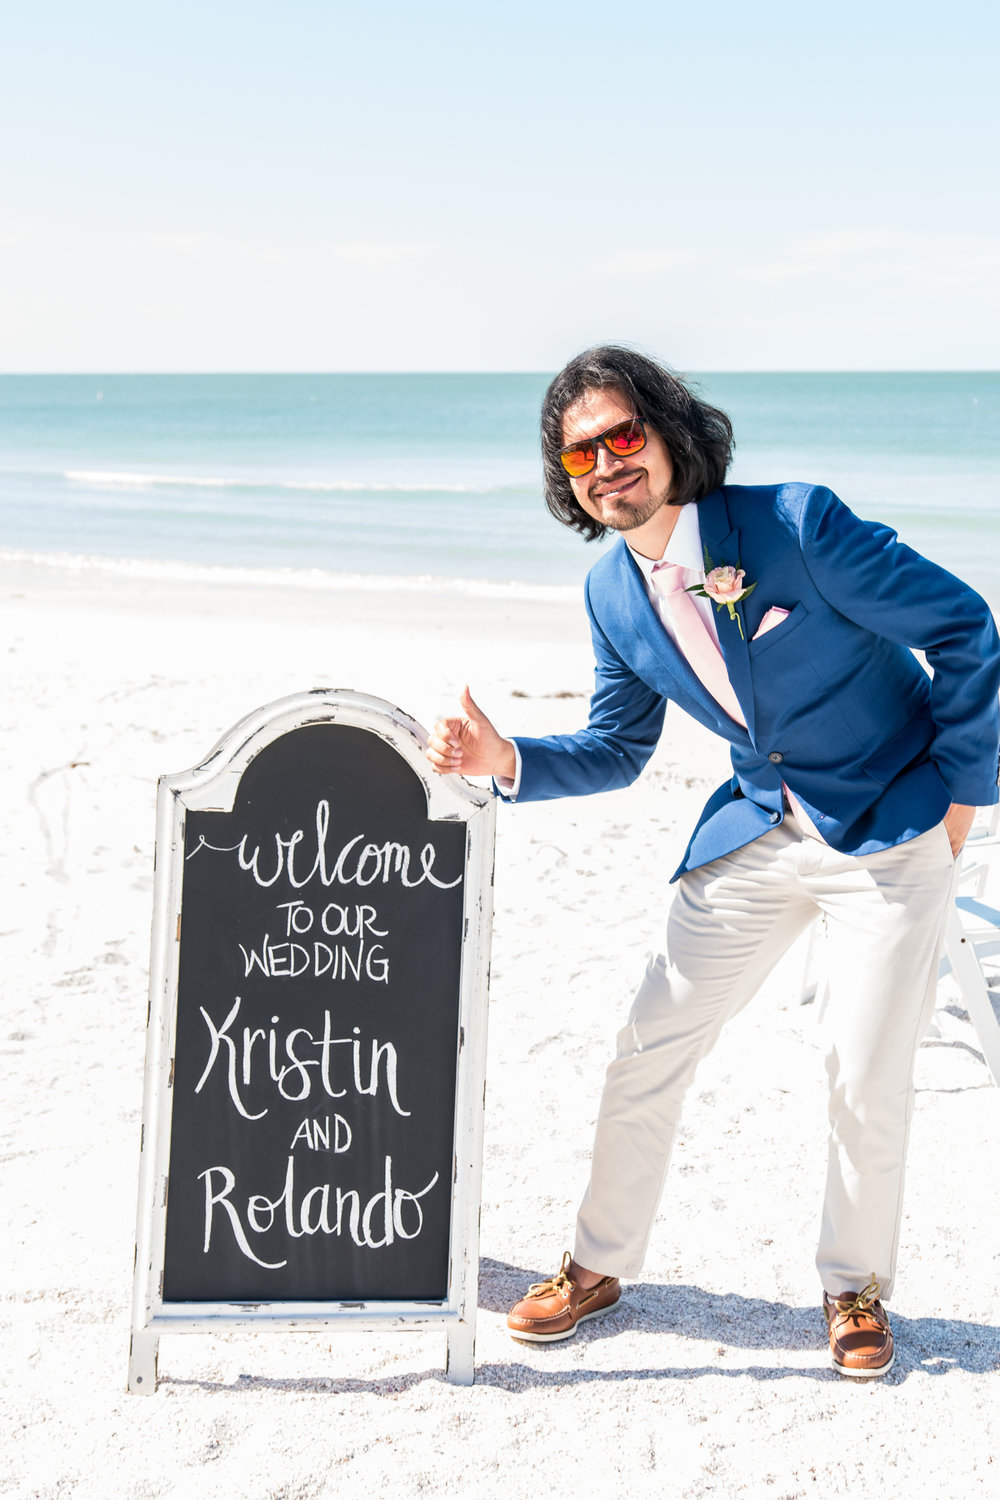 St.Pete-beach-wedding, groom-photo-at-the-beach